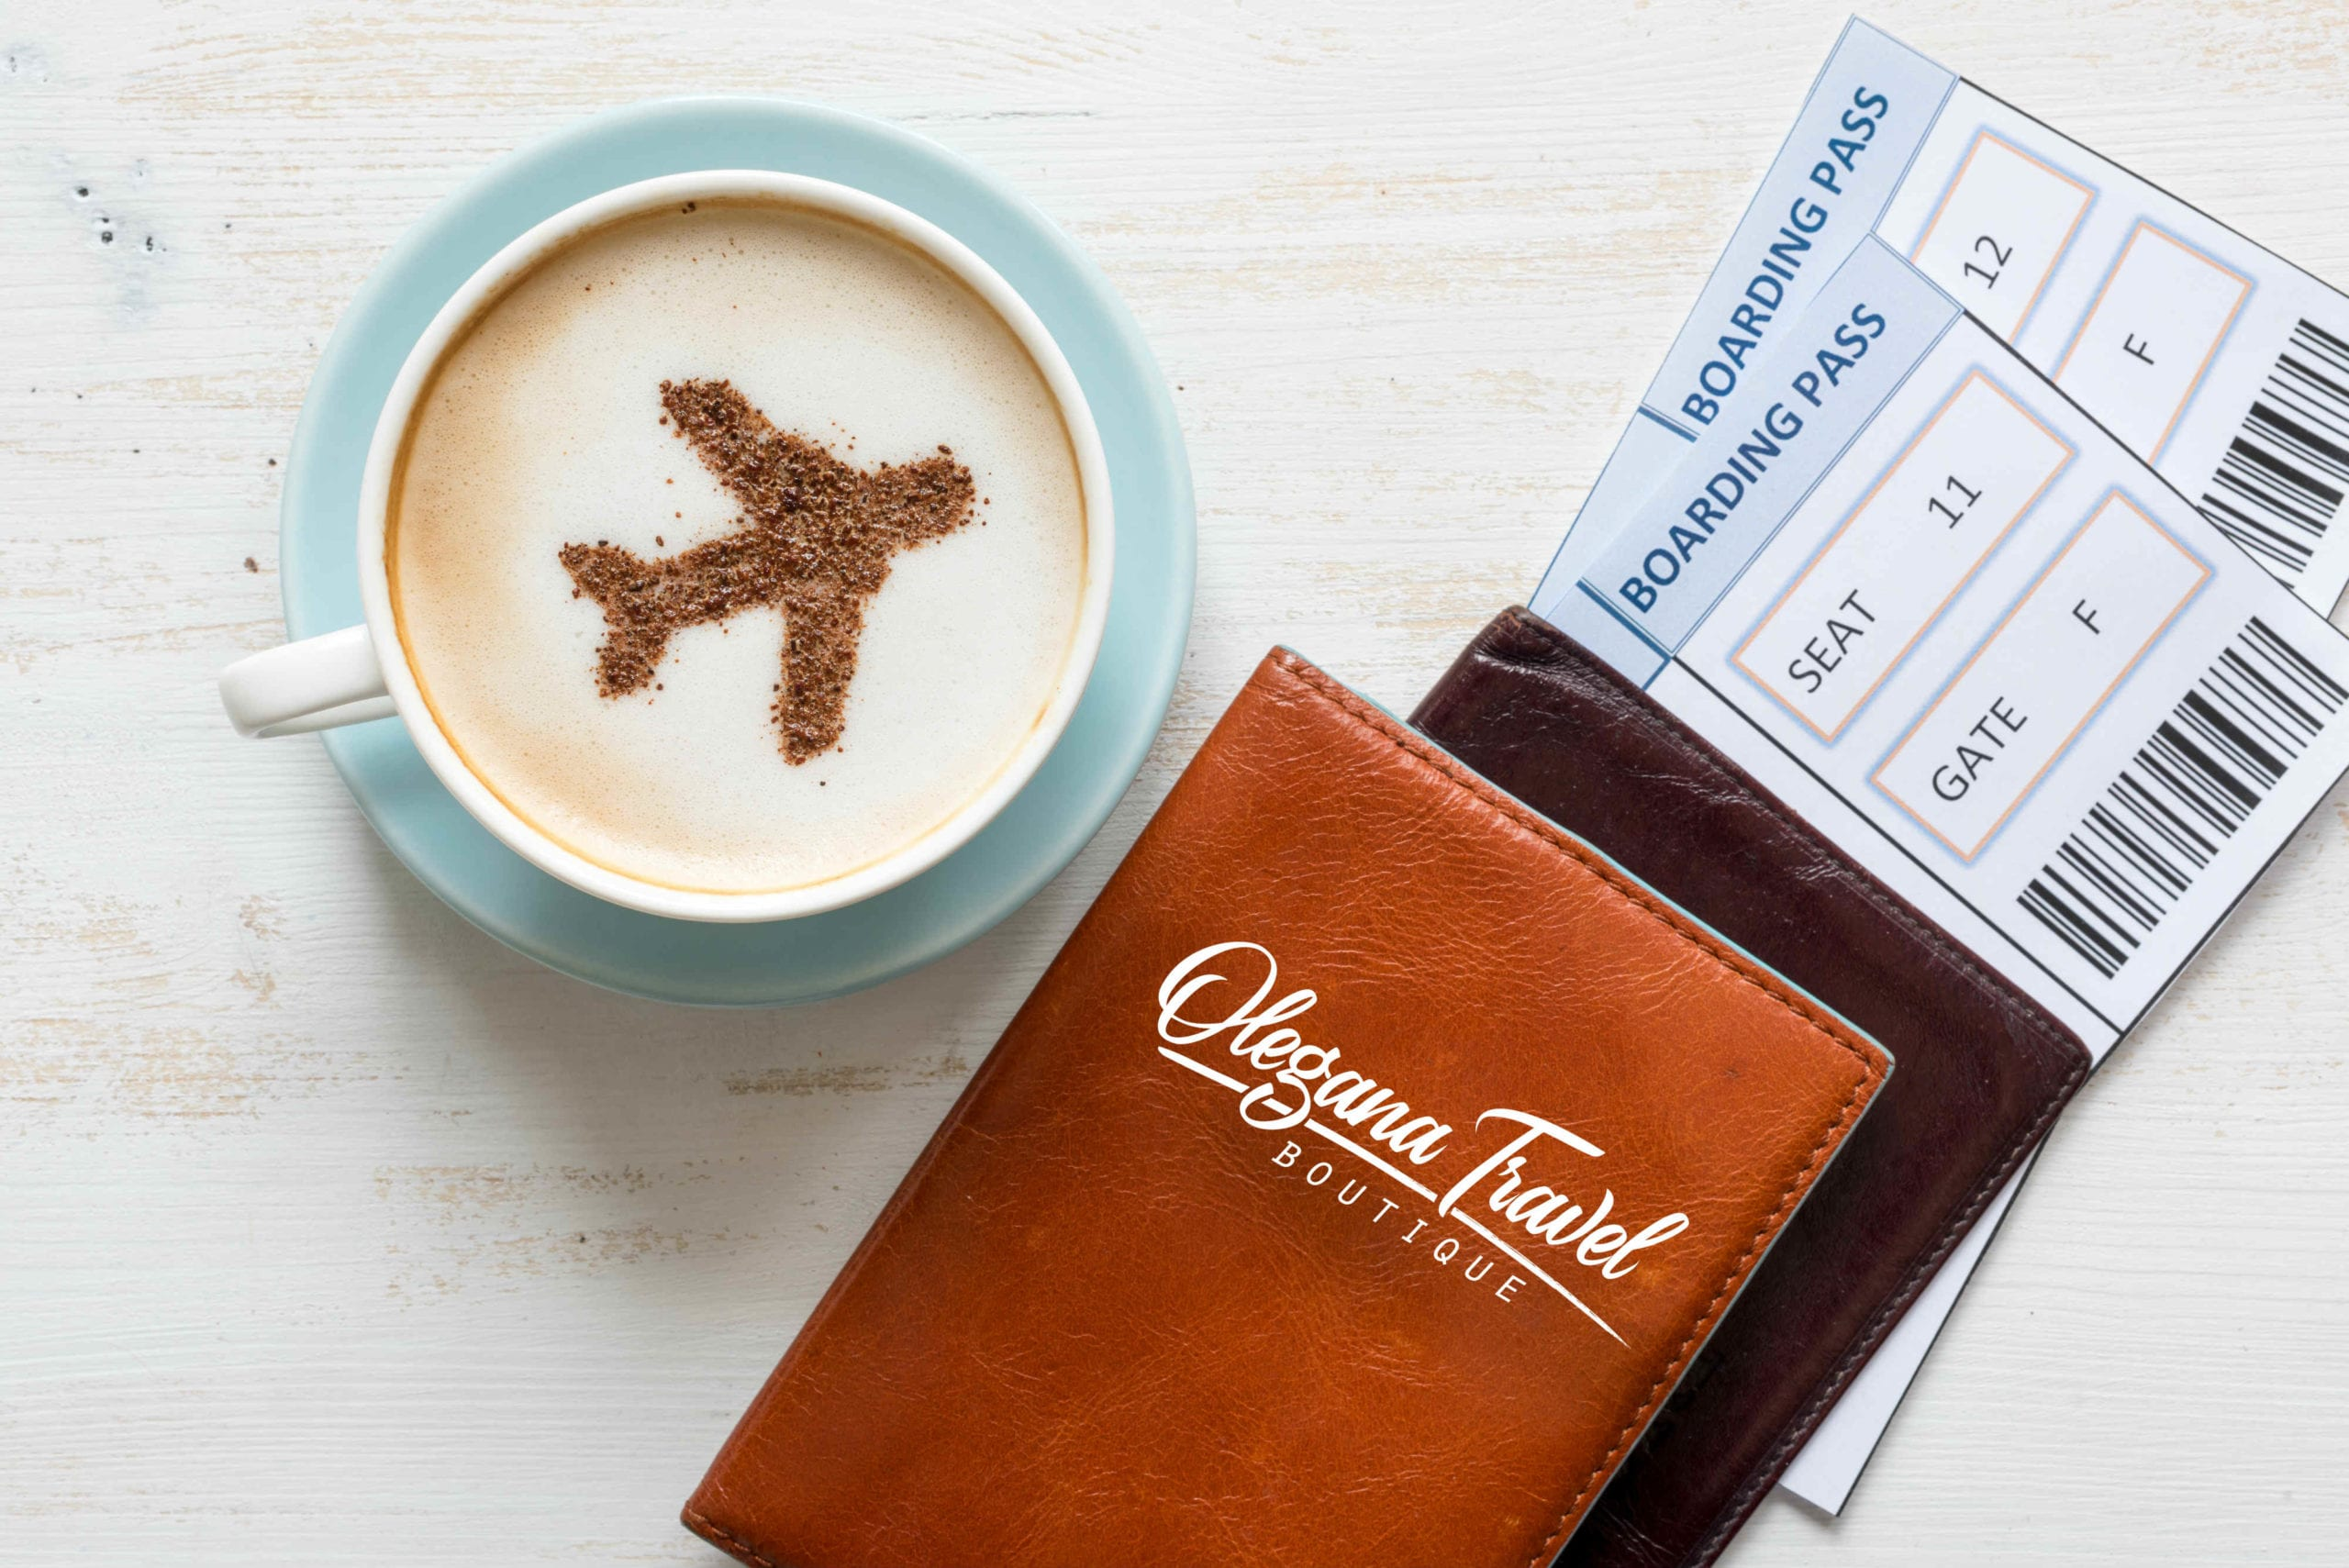 Olegana Travel Boutique, coffee and passport cover